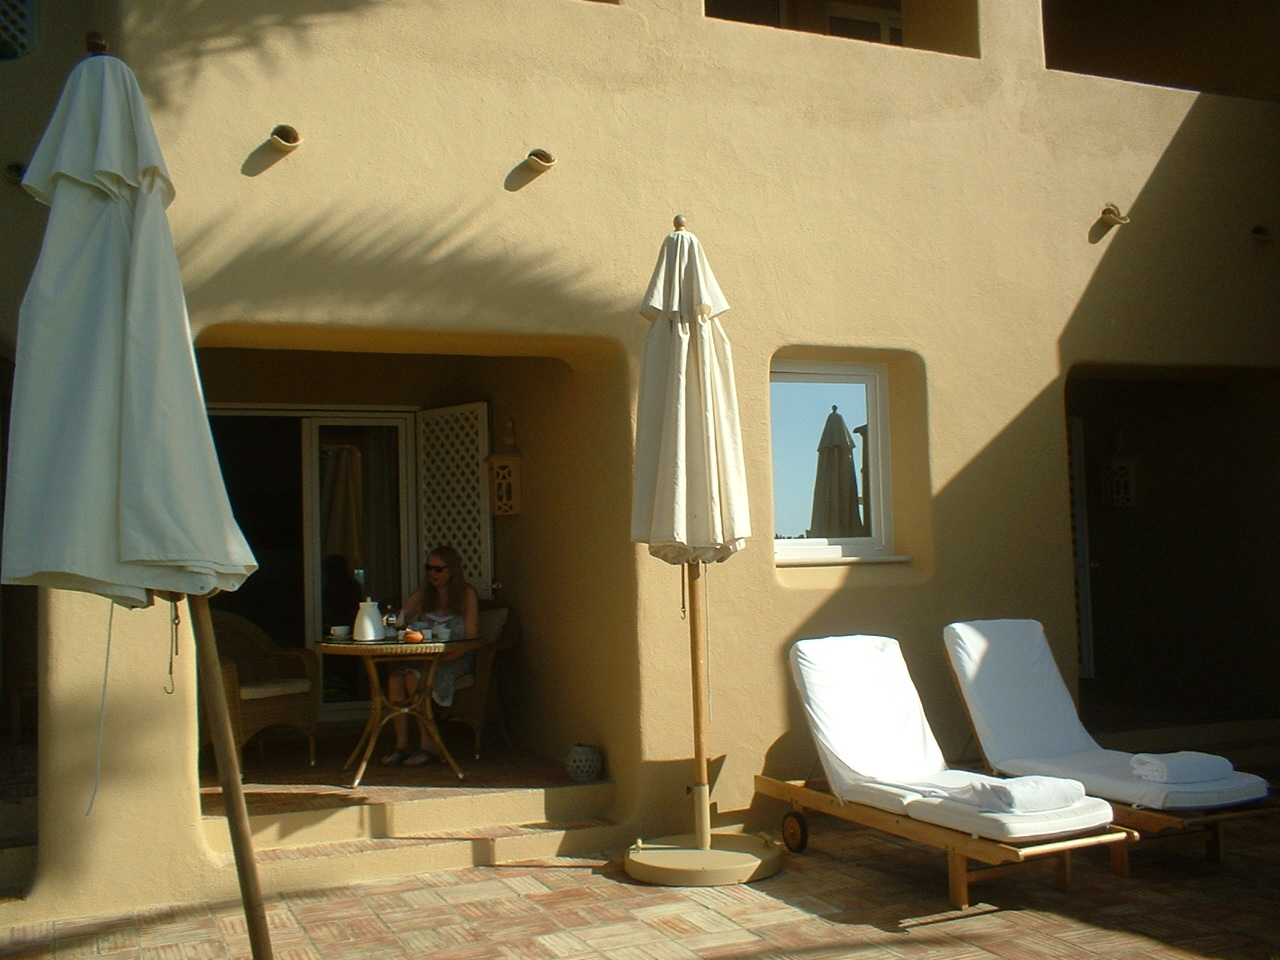 Review of vila joya europe s leading boutique hotel for Leading small hotels